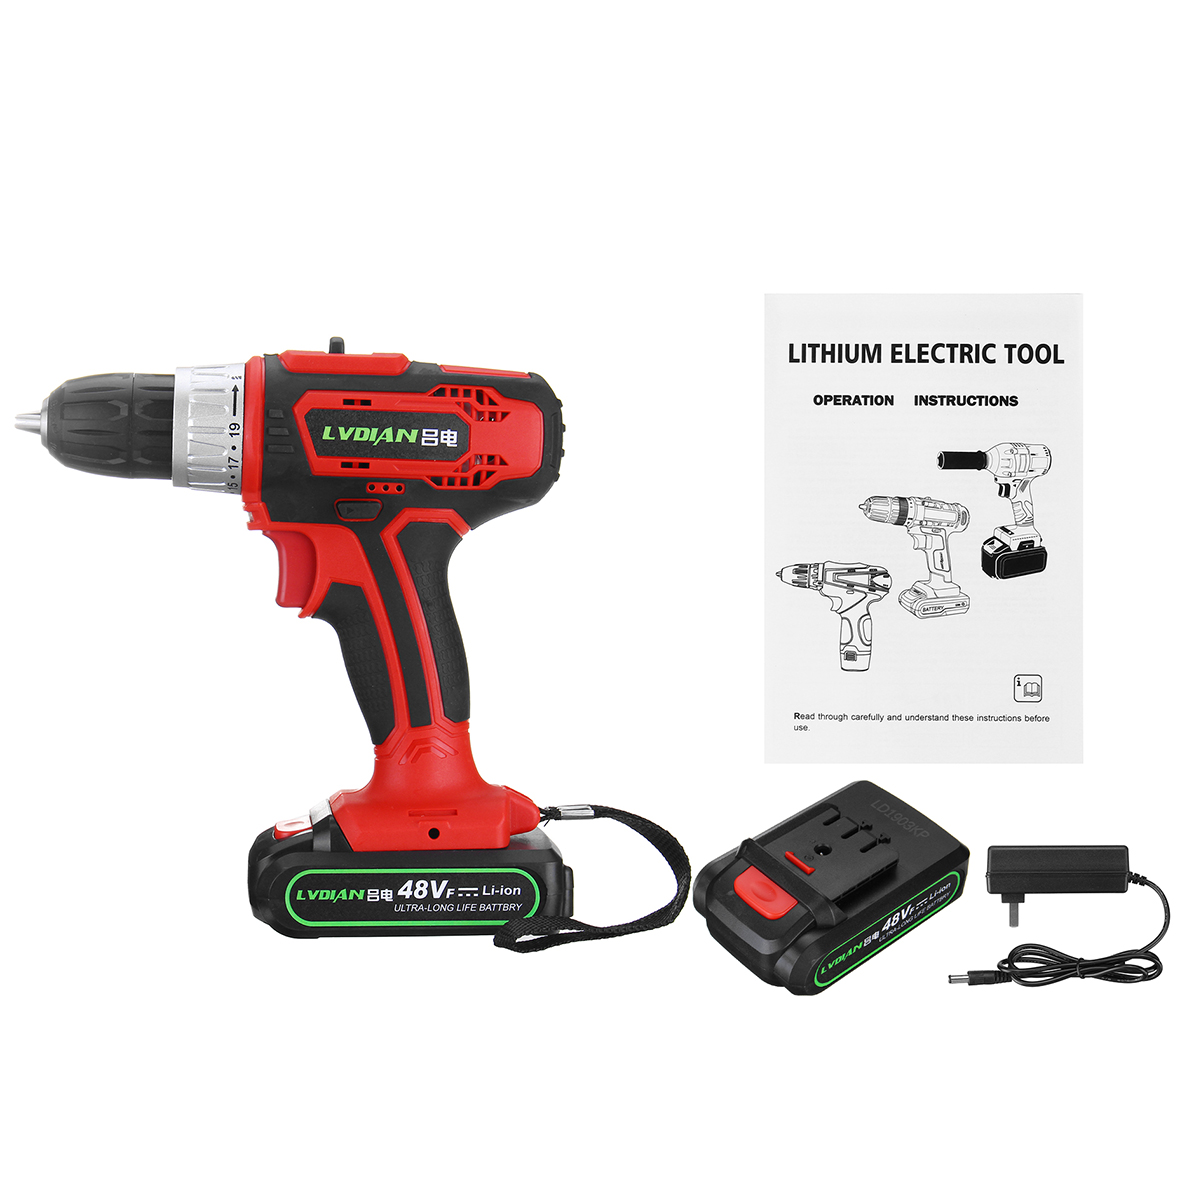 48V 2 Speed Cordless Electric Screwdriver Drill LED Rechargeable Waterproof Electric Power Dirver Drill With 2 Battery